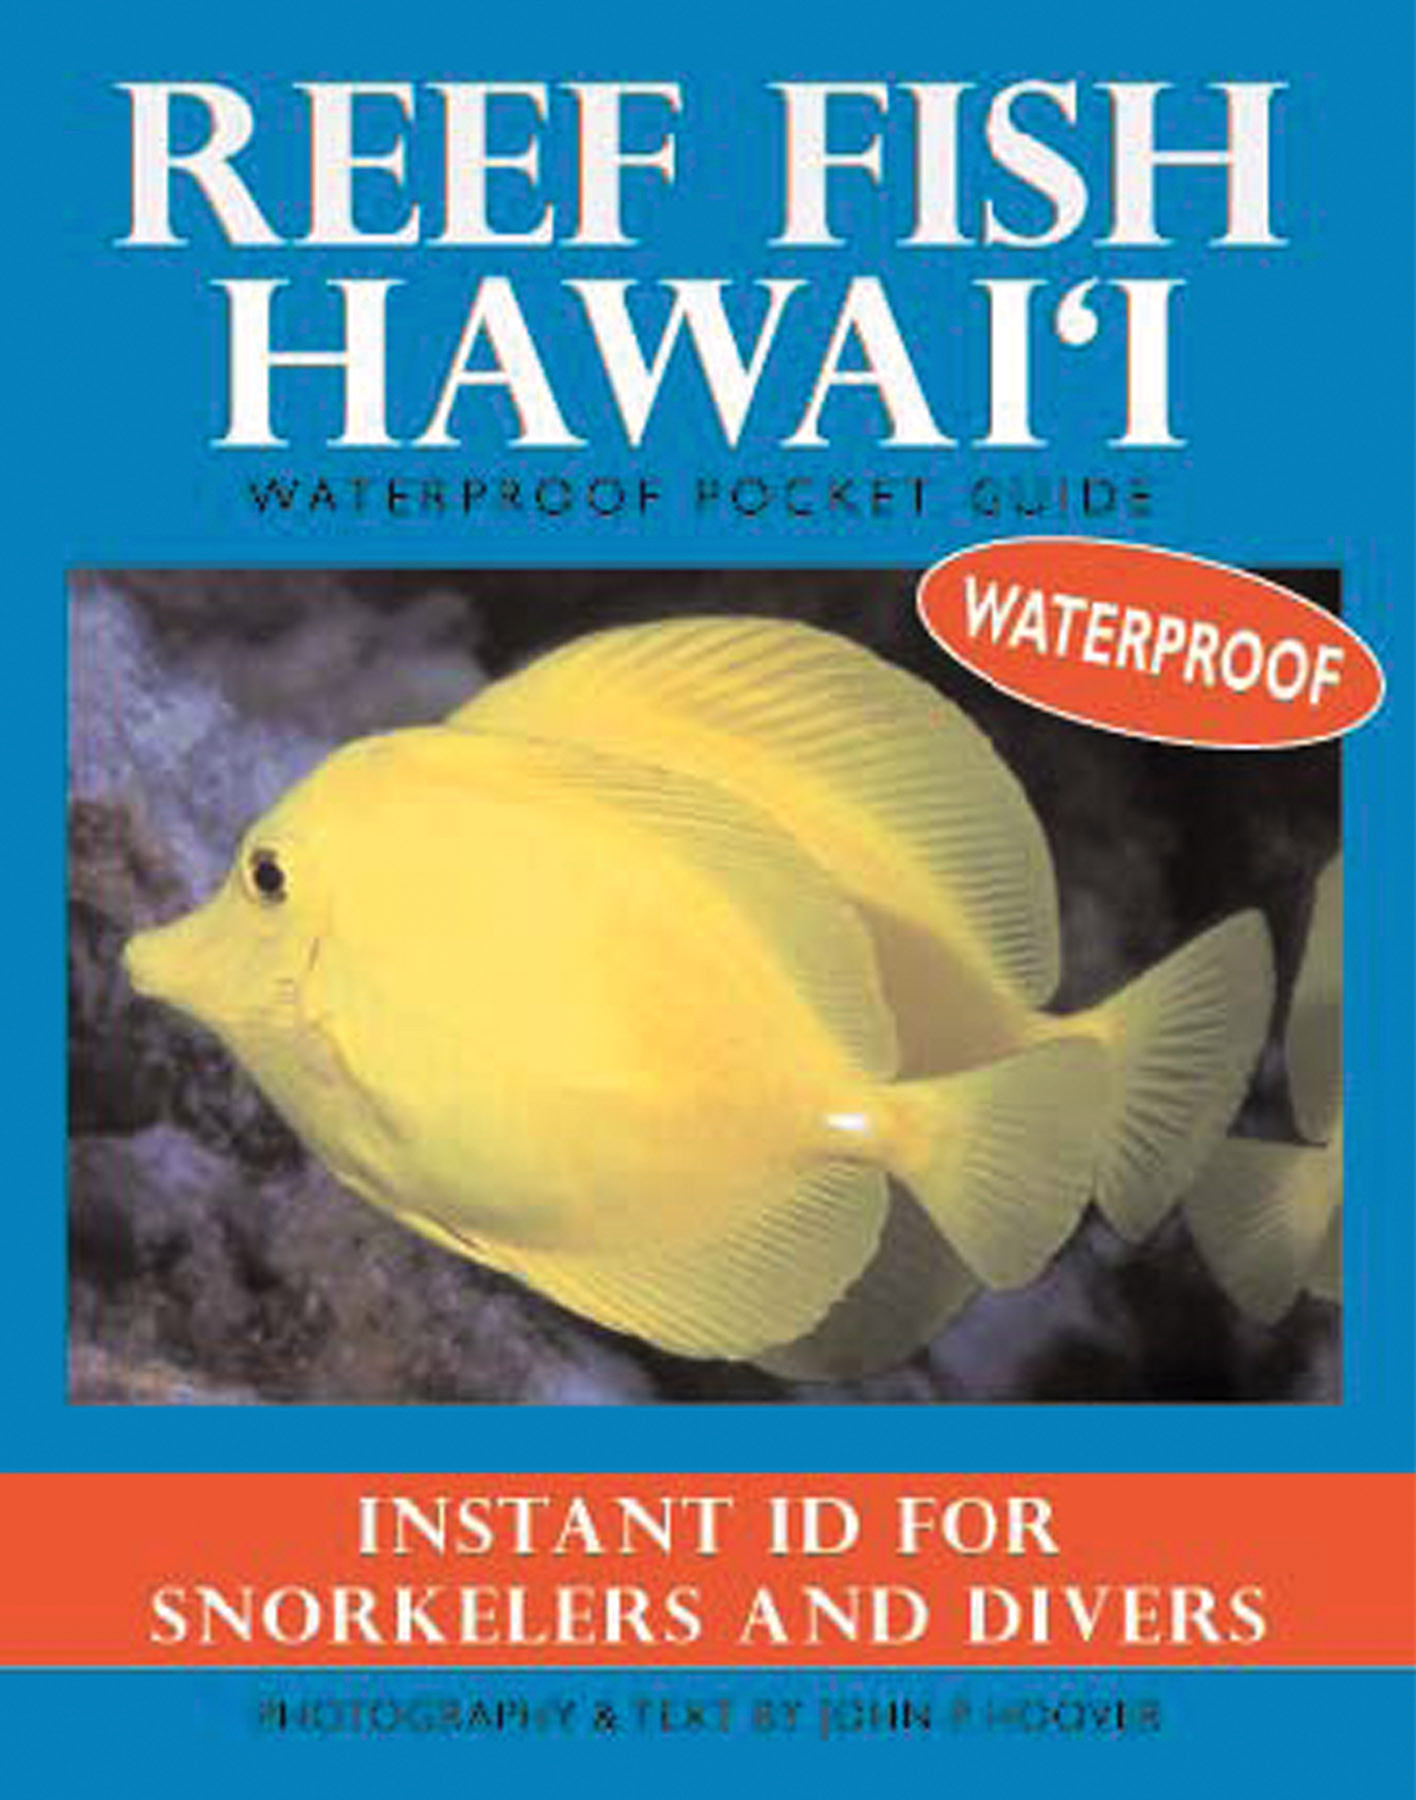 Reef fish hawai 39 i waterproof pocket guide for Urine smells like fish after eating fish